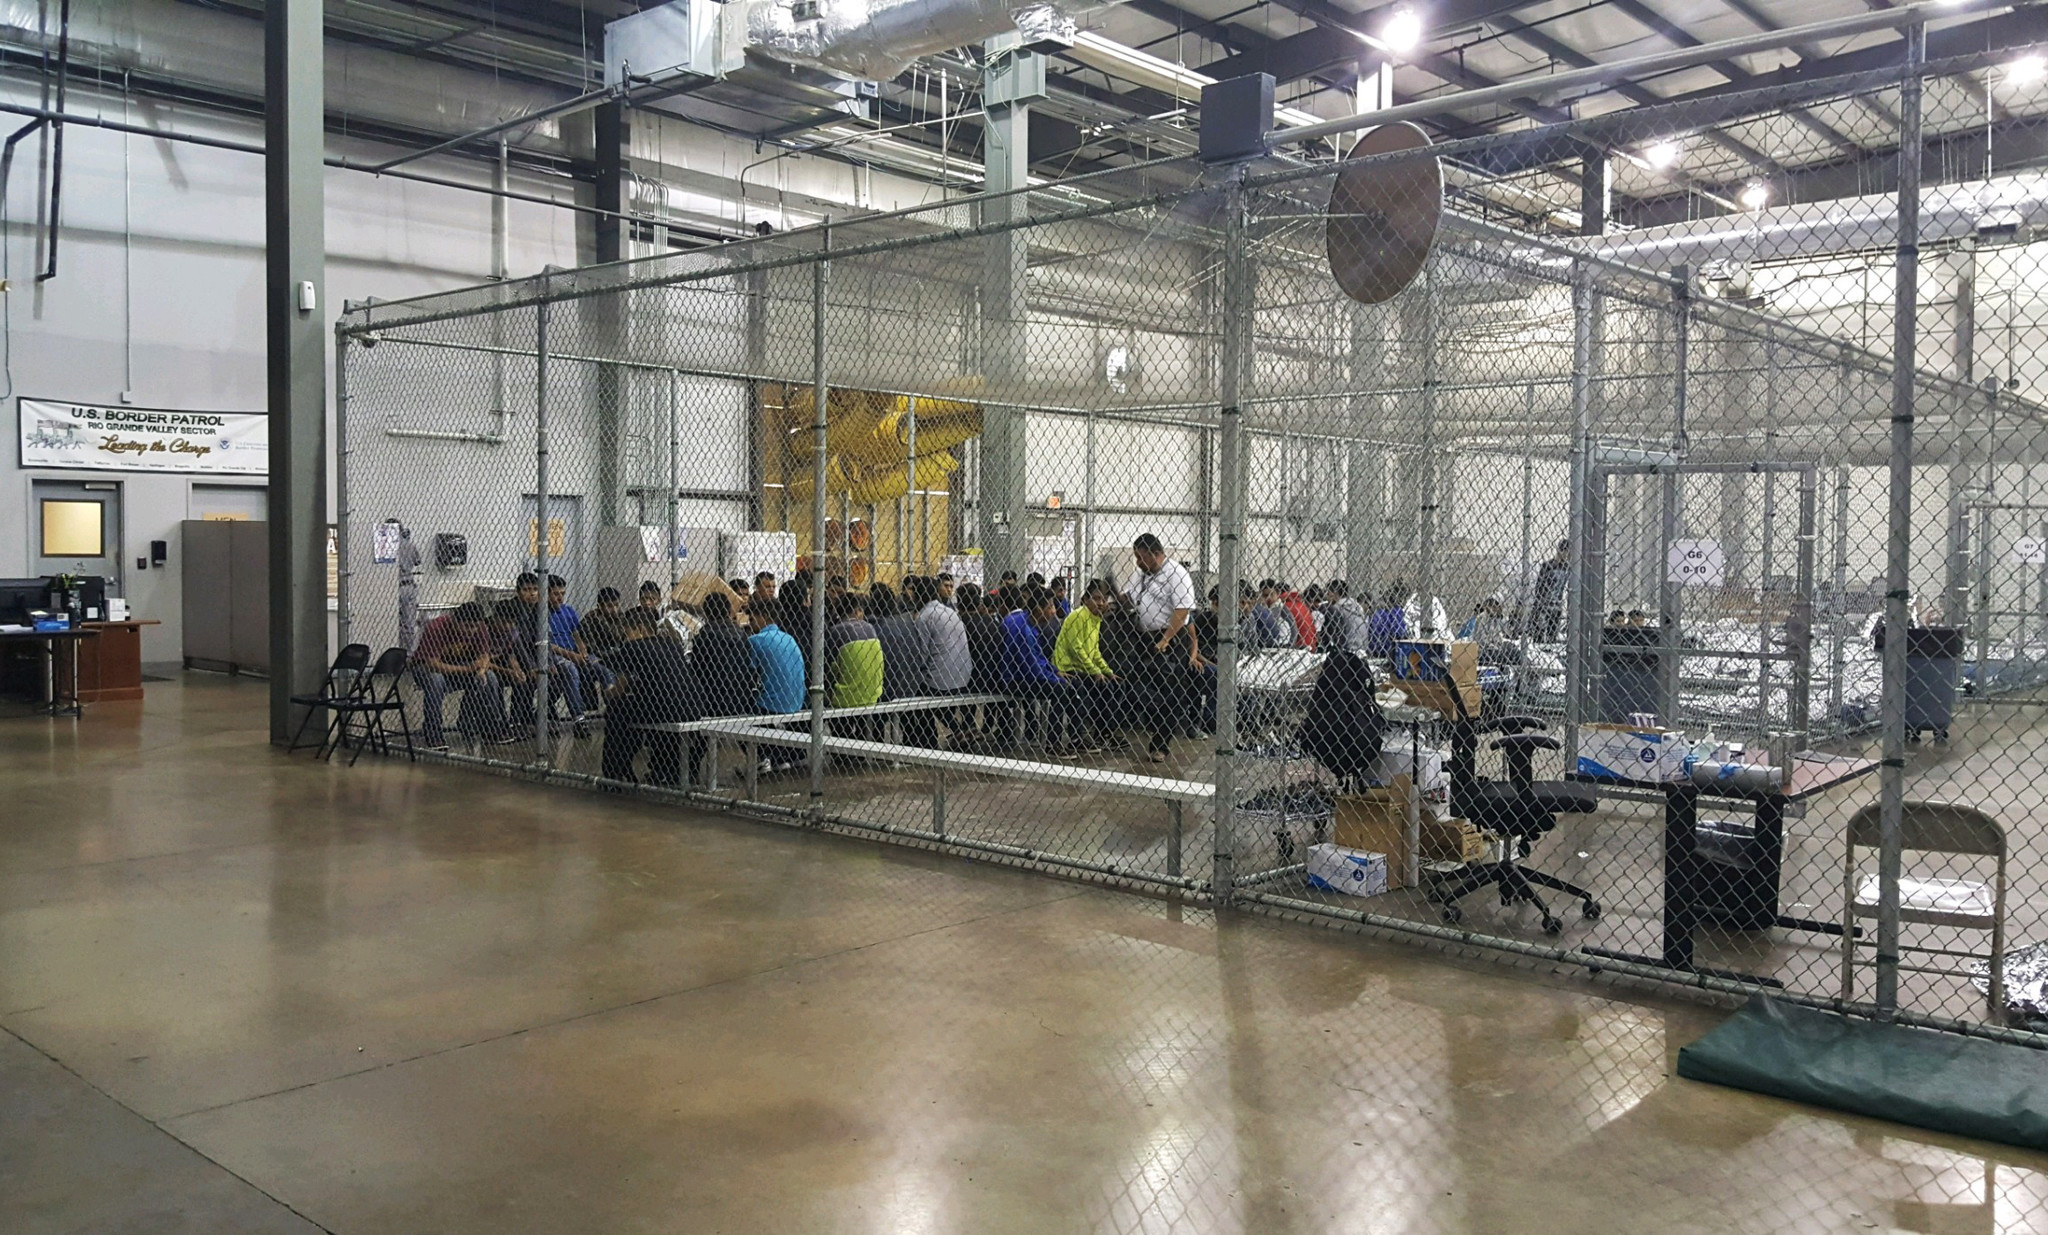 Hundreds Of Immigrant Children Are Being Held In Fenced